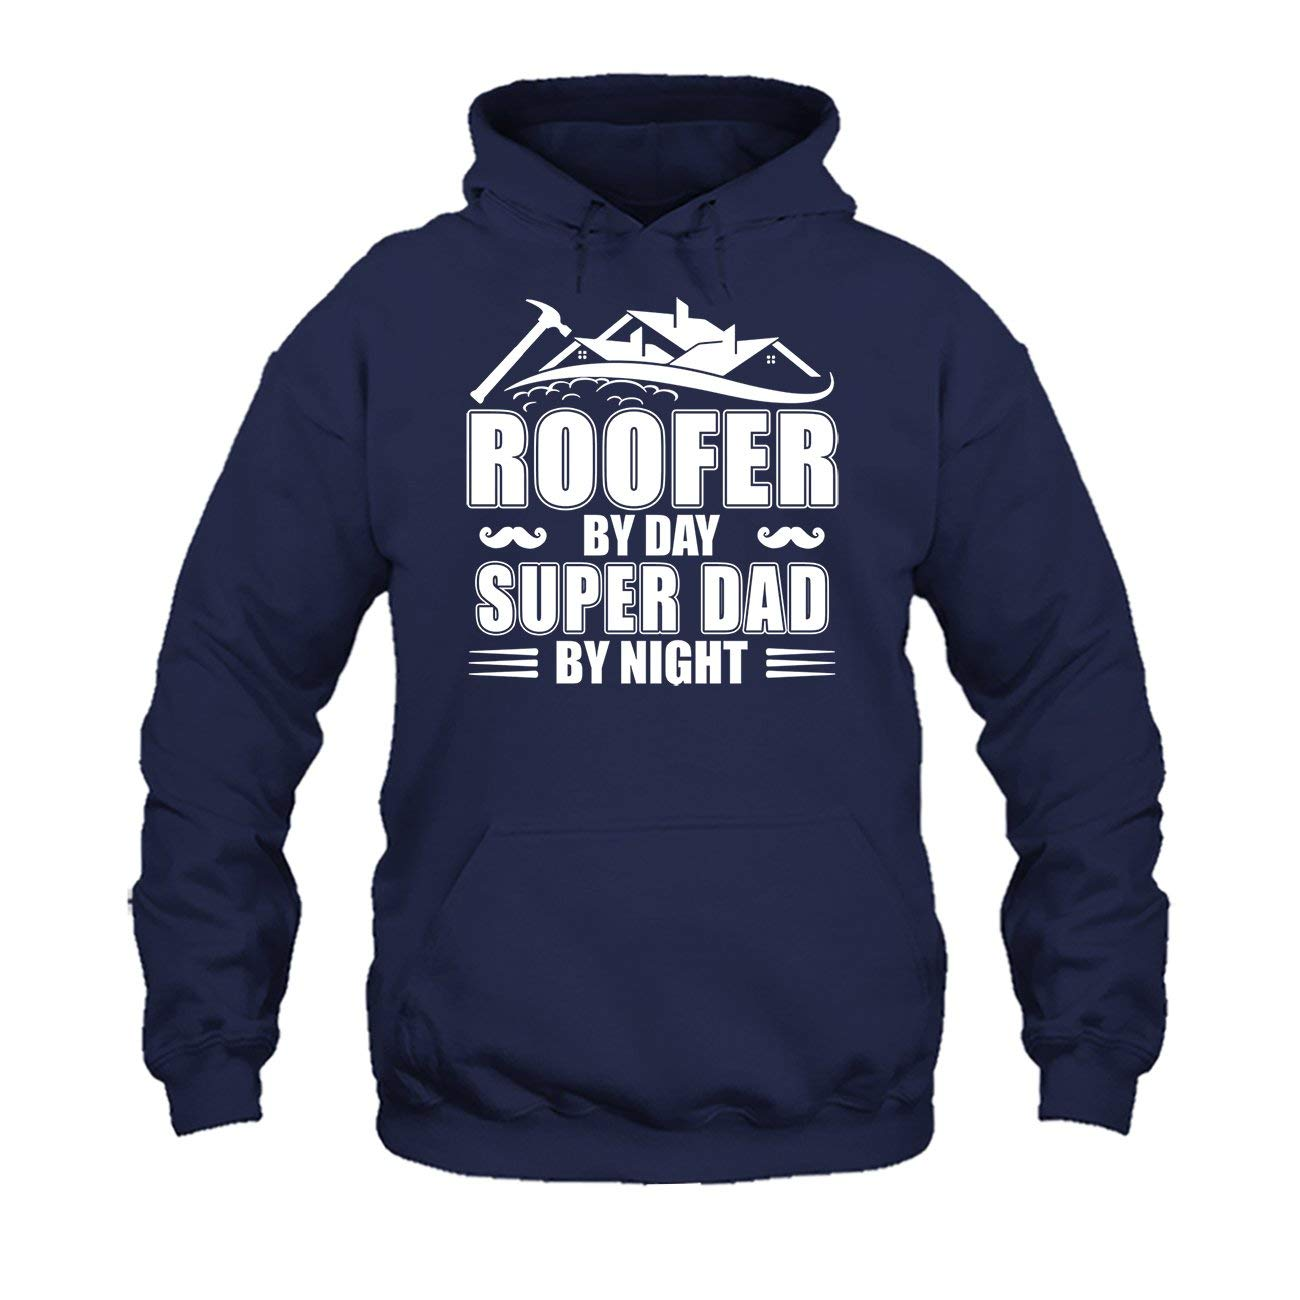 AreFrog Roofer by Day Super Dad by Night Tee Shirt Hoodies Shirt